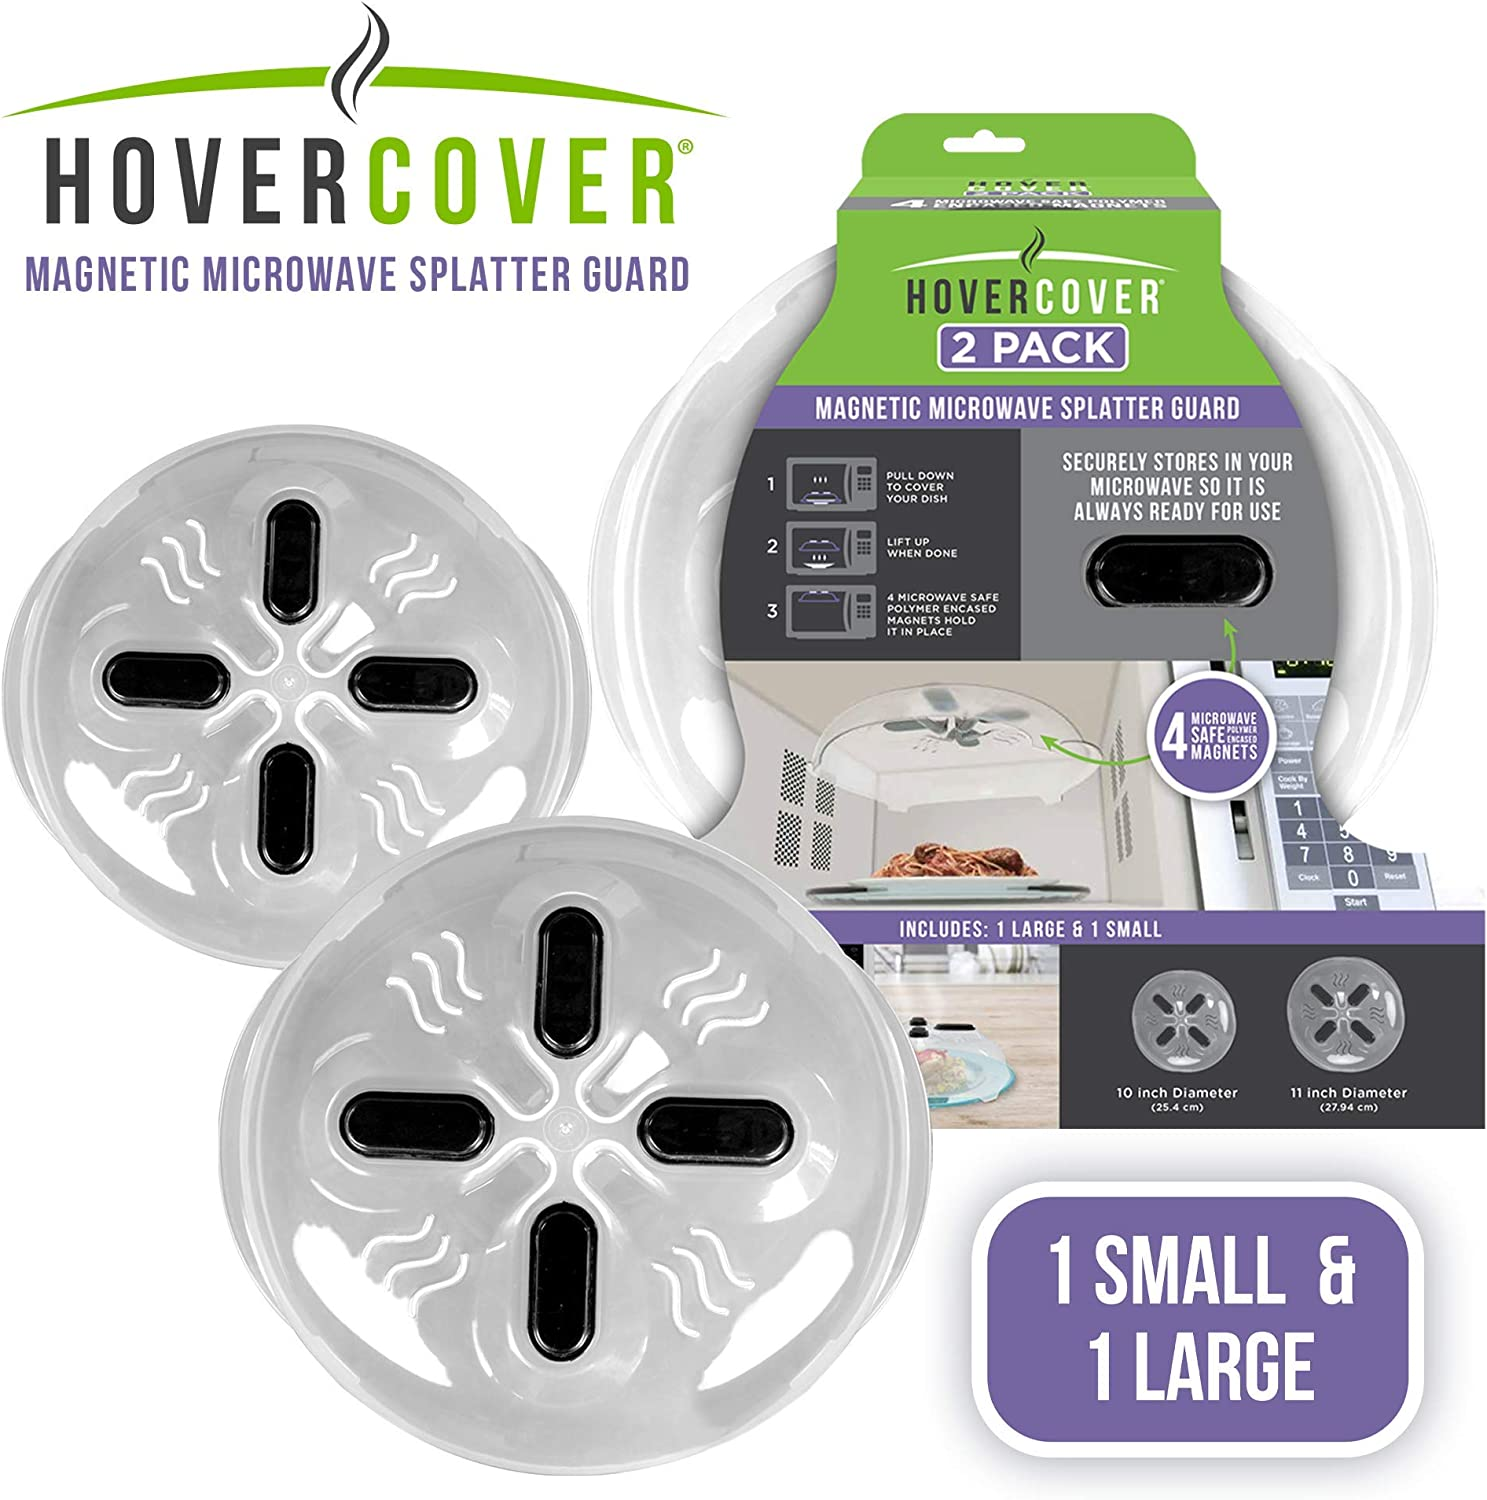 Set of 2 Hover Cover Magnetic Microwave Splatter Lid with Steam Vents Plate Covers For Large and Small Microwaves | Includes: 1 Large (11 inch) & 1 Small (10 inch) Covers | Dishwasher Safe BPA Free |